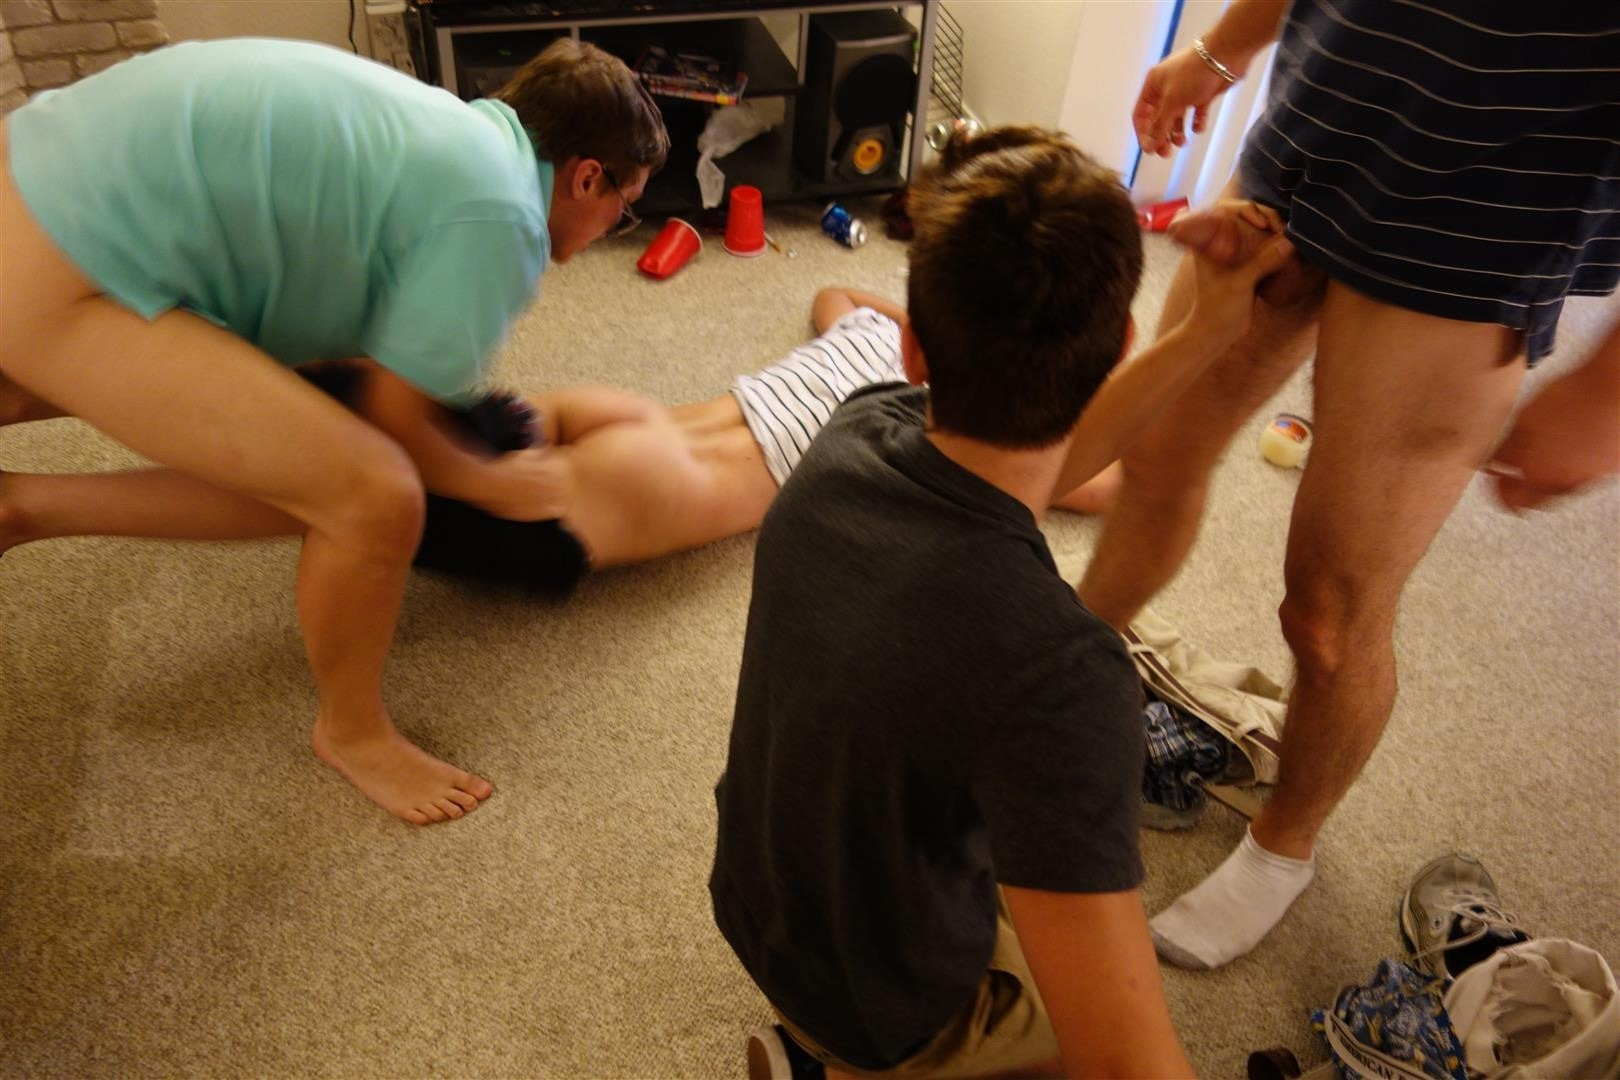 Fraternity-X-Drunk-Frat-Pledge-Gets-Barebacked-While-Passed-Out-Amateur-Gay-Porn-35 Drunk And Passed Out Frat Pledge Gets Fucked Bareback